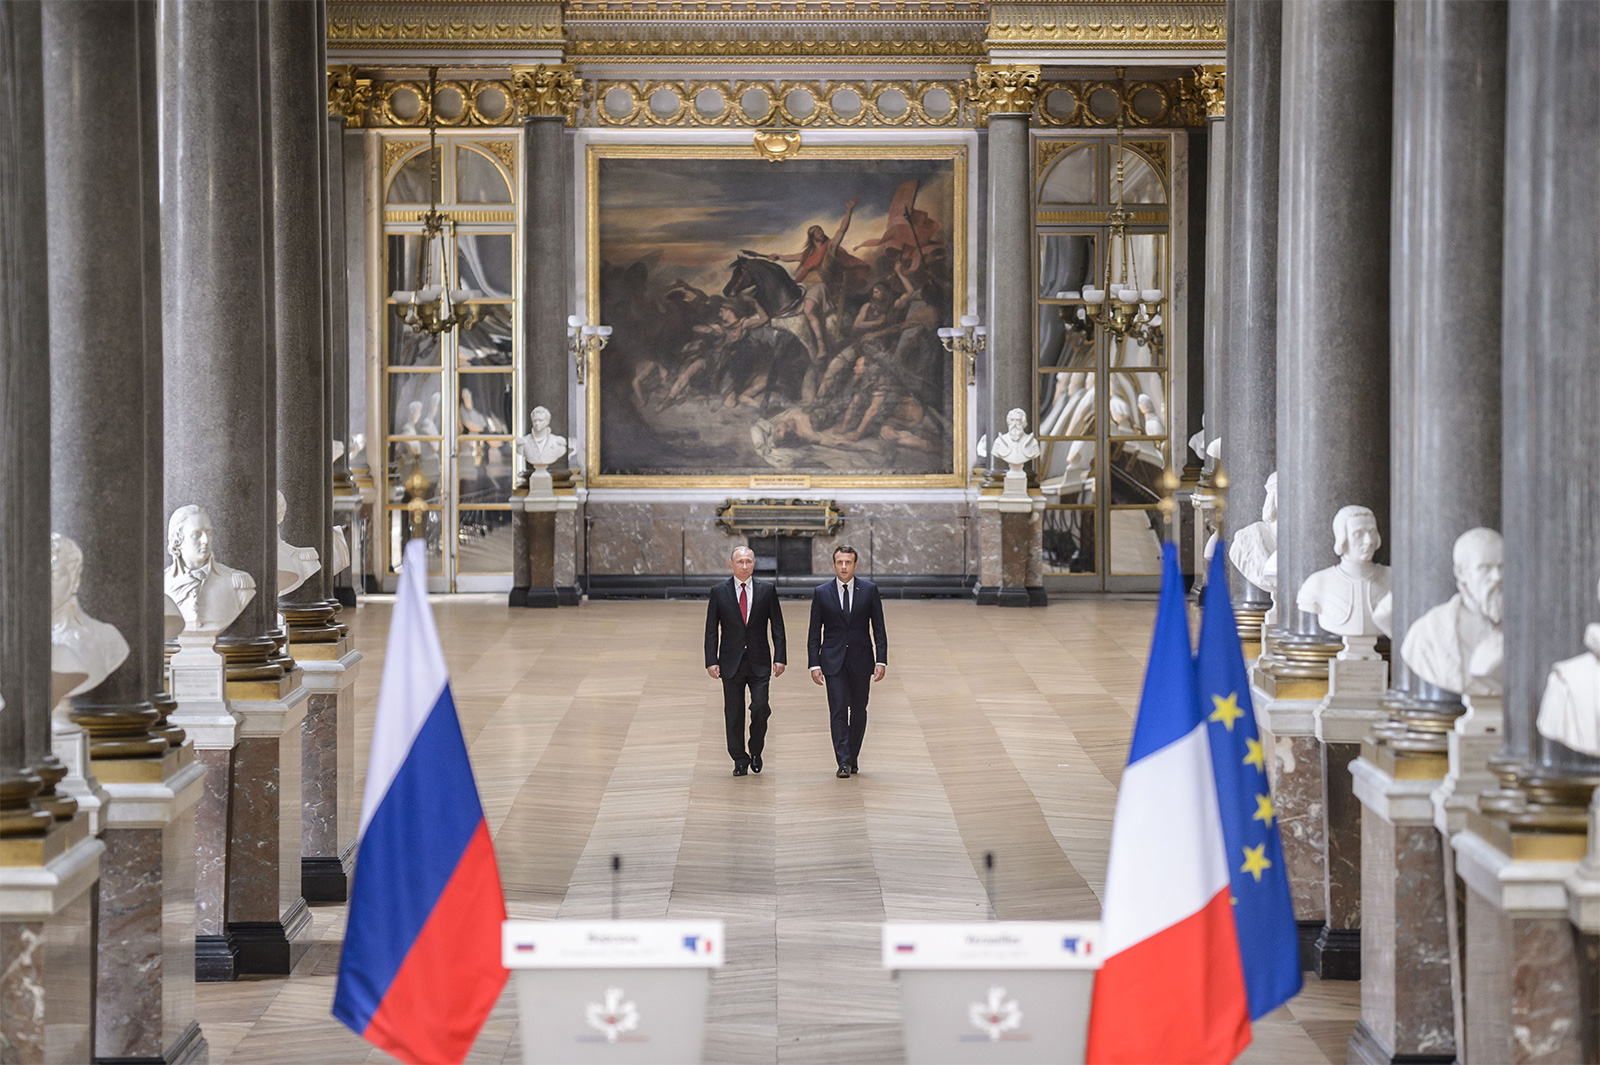 French foreign minister advocates continued dialogue with Russia despite sanctions